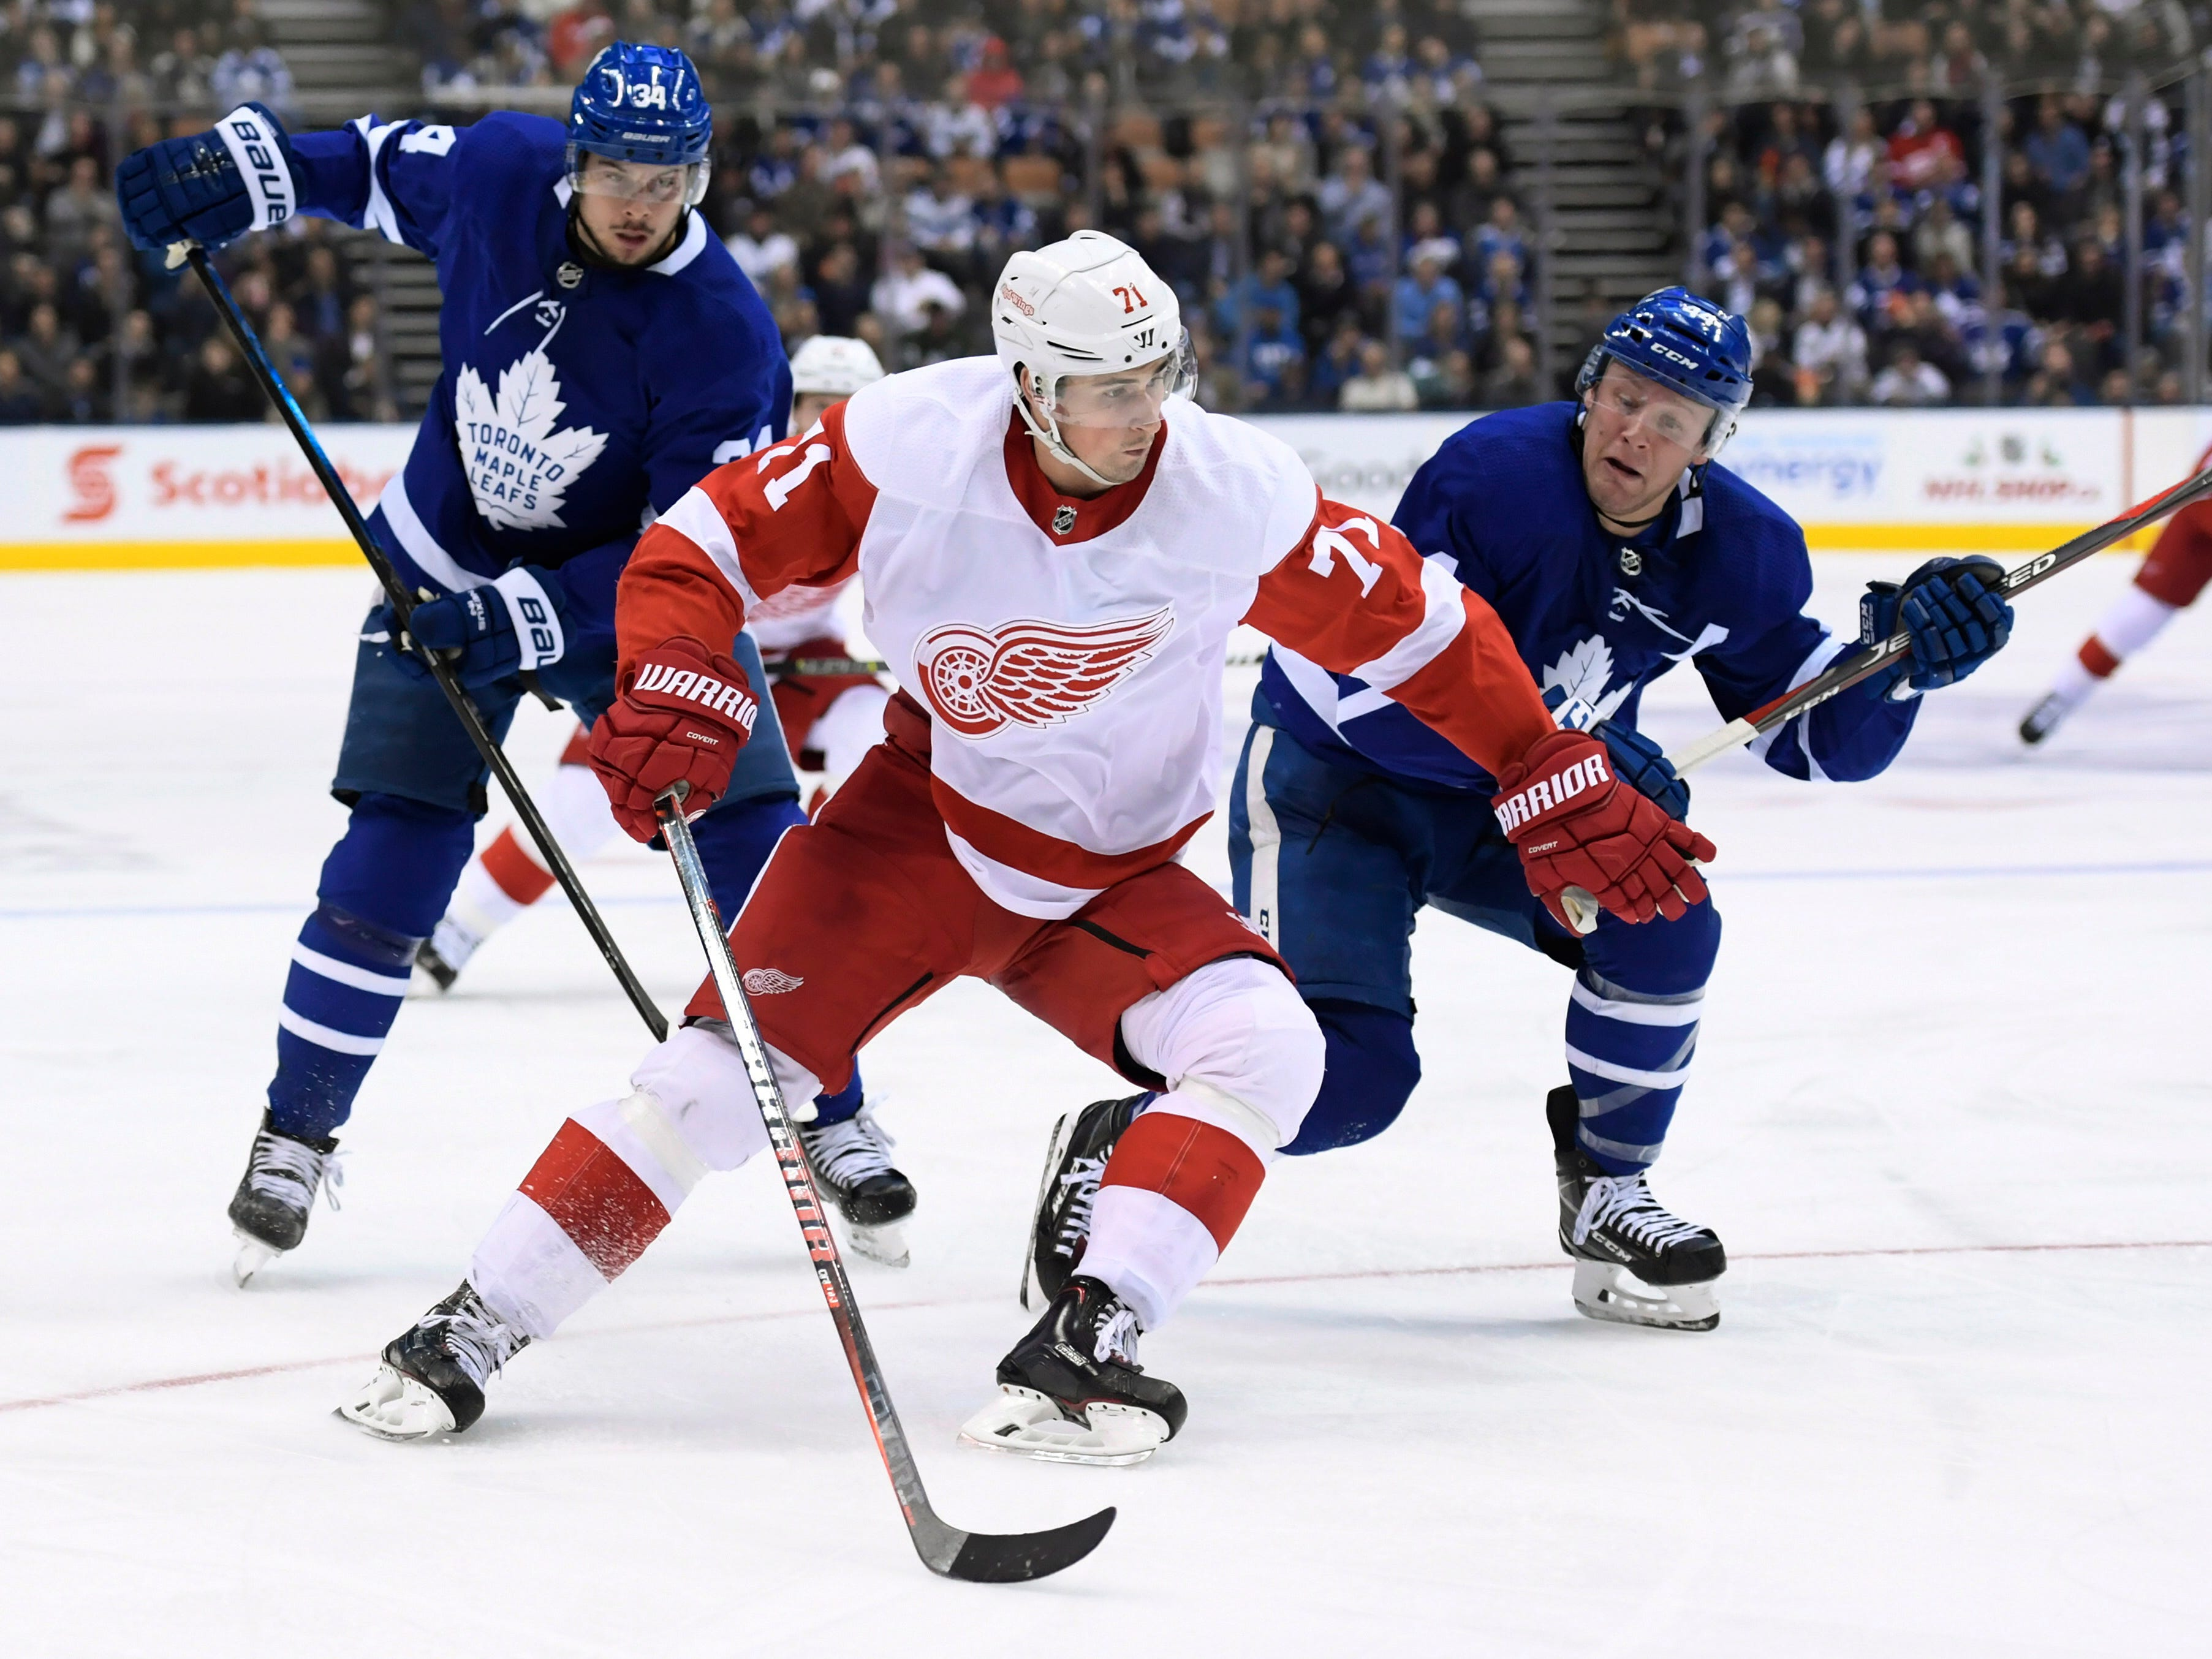 Detroit Red Wings center Dylan Larkin moves past Toronto Maple Leafs defenseman Morgan Rielly (44) and Maple Leafs center Auston Matthews (34) during the third period Thursday, Dec 6, 2018, in Toronto.